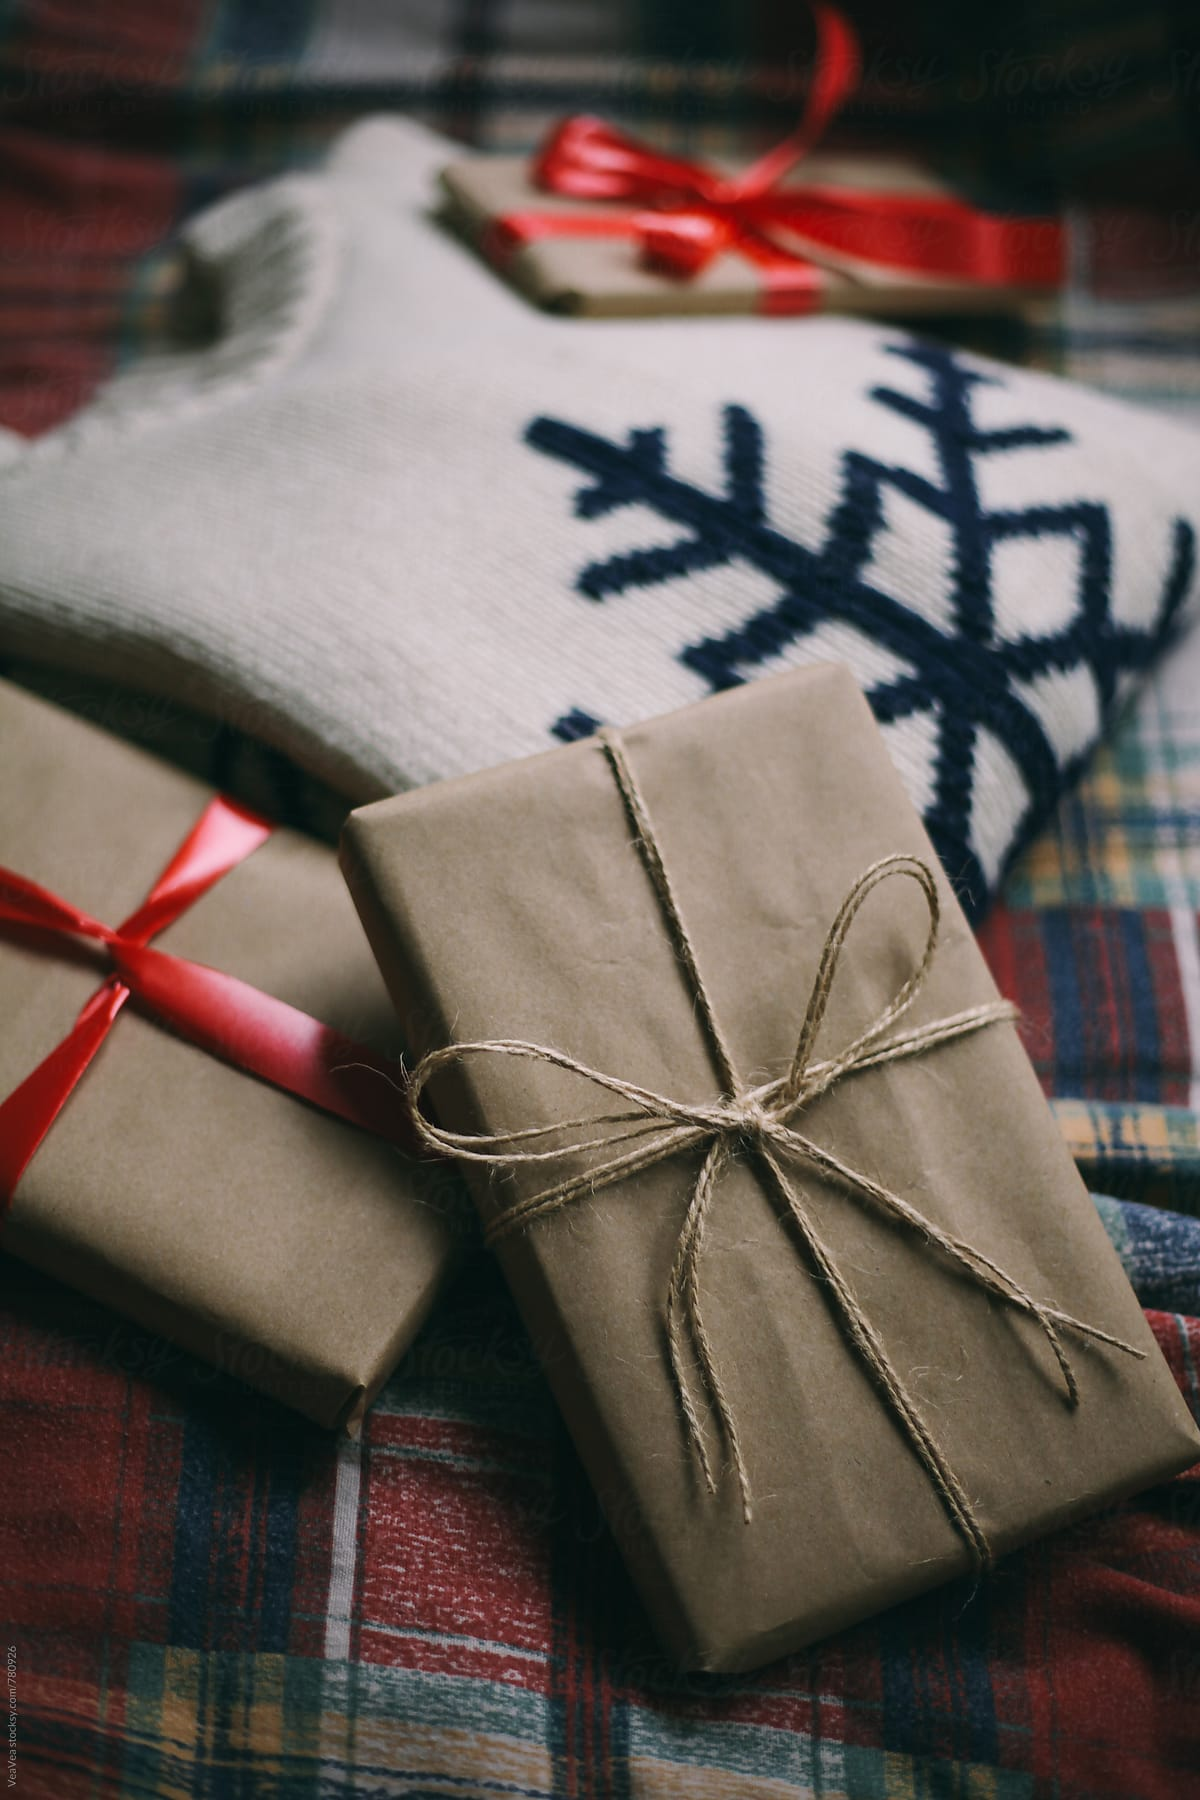 Christmas Gifts And Sweater On A Natural Light Stocksy United